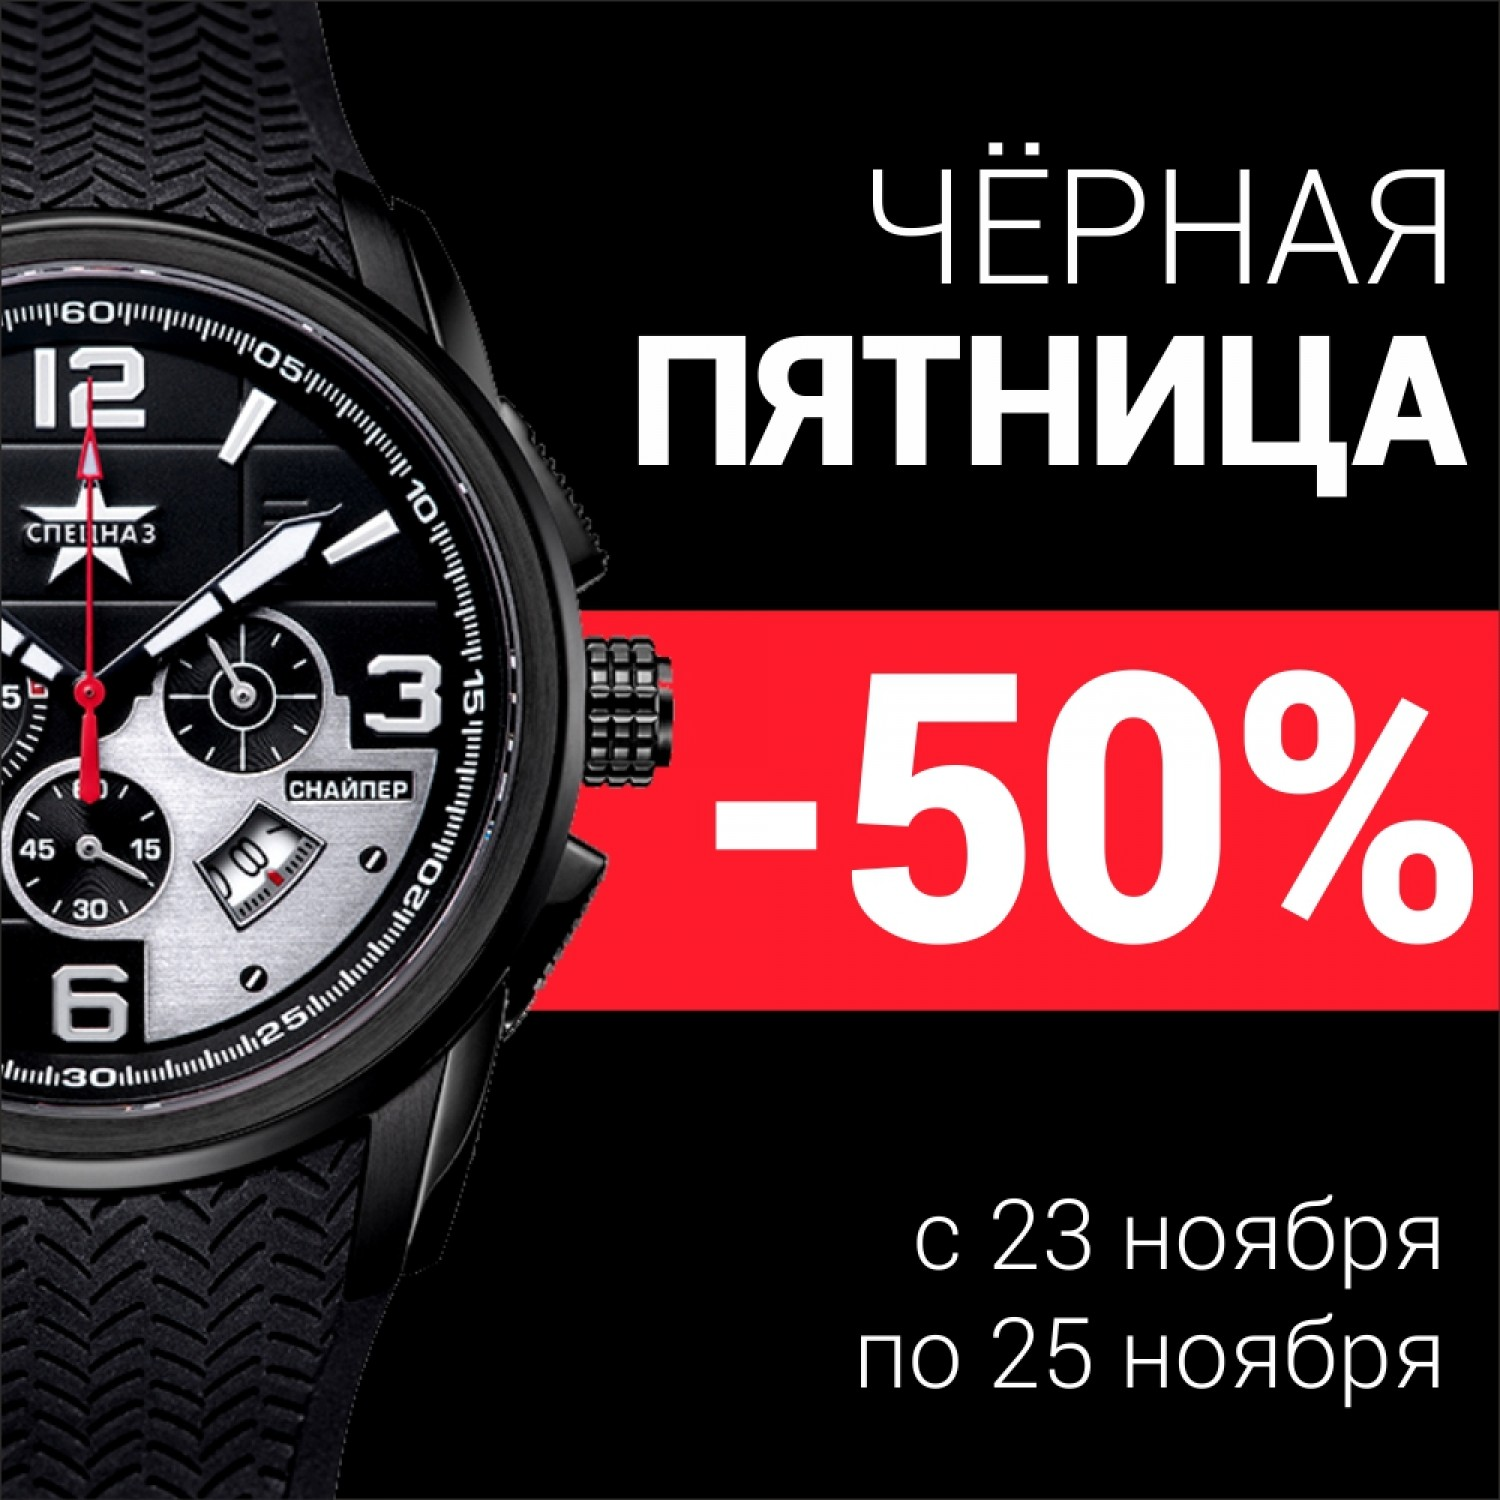 Скидки до 50% в Black Friday с 23.11-25.11!